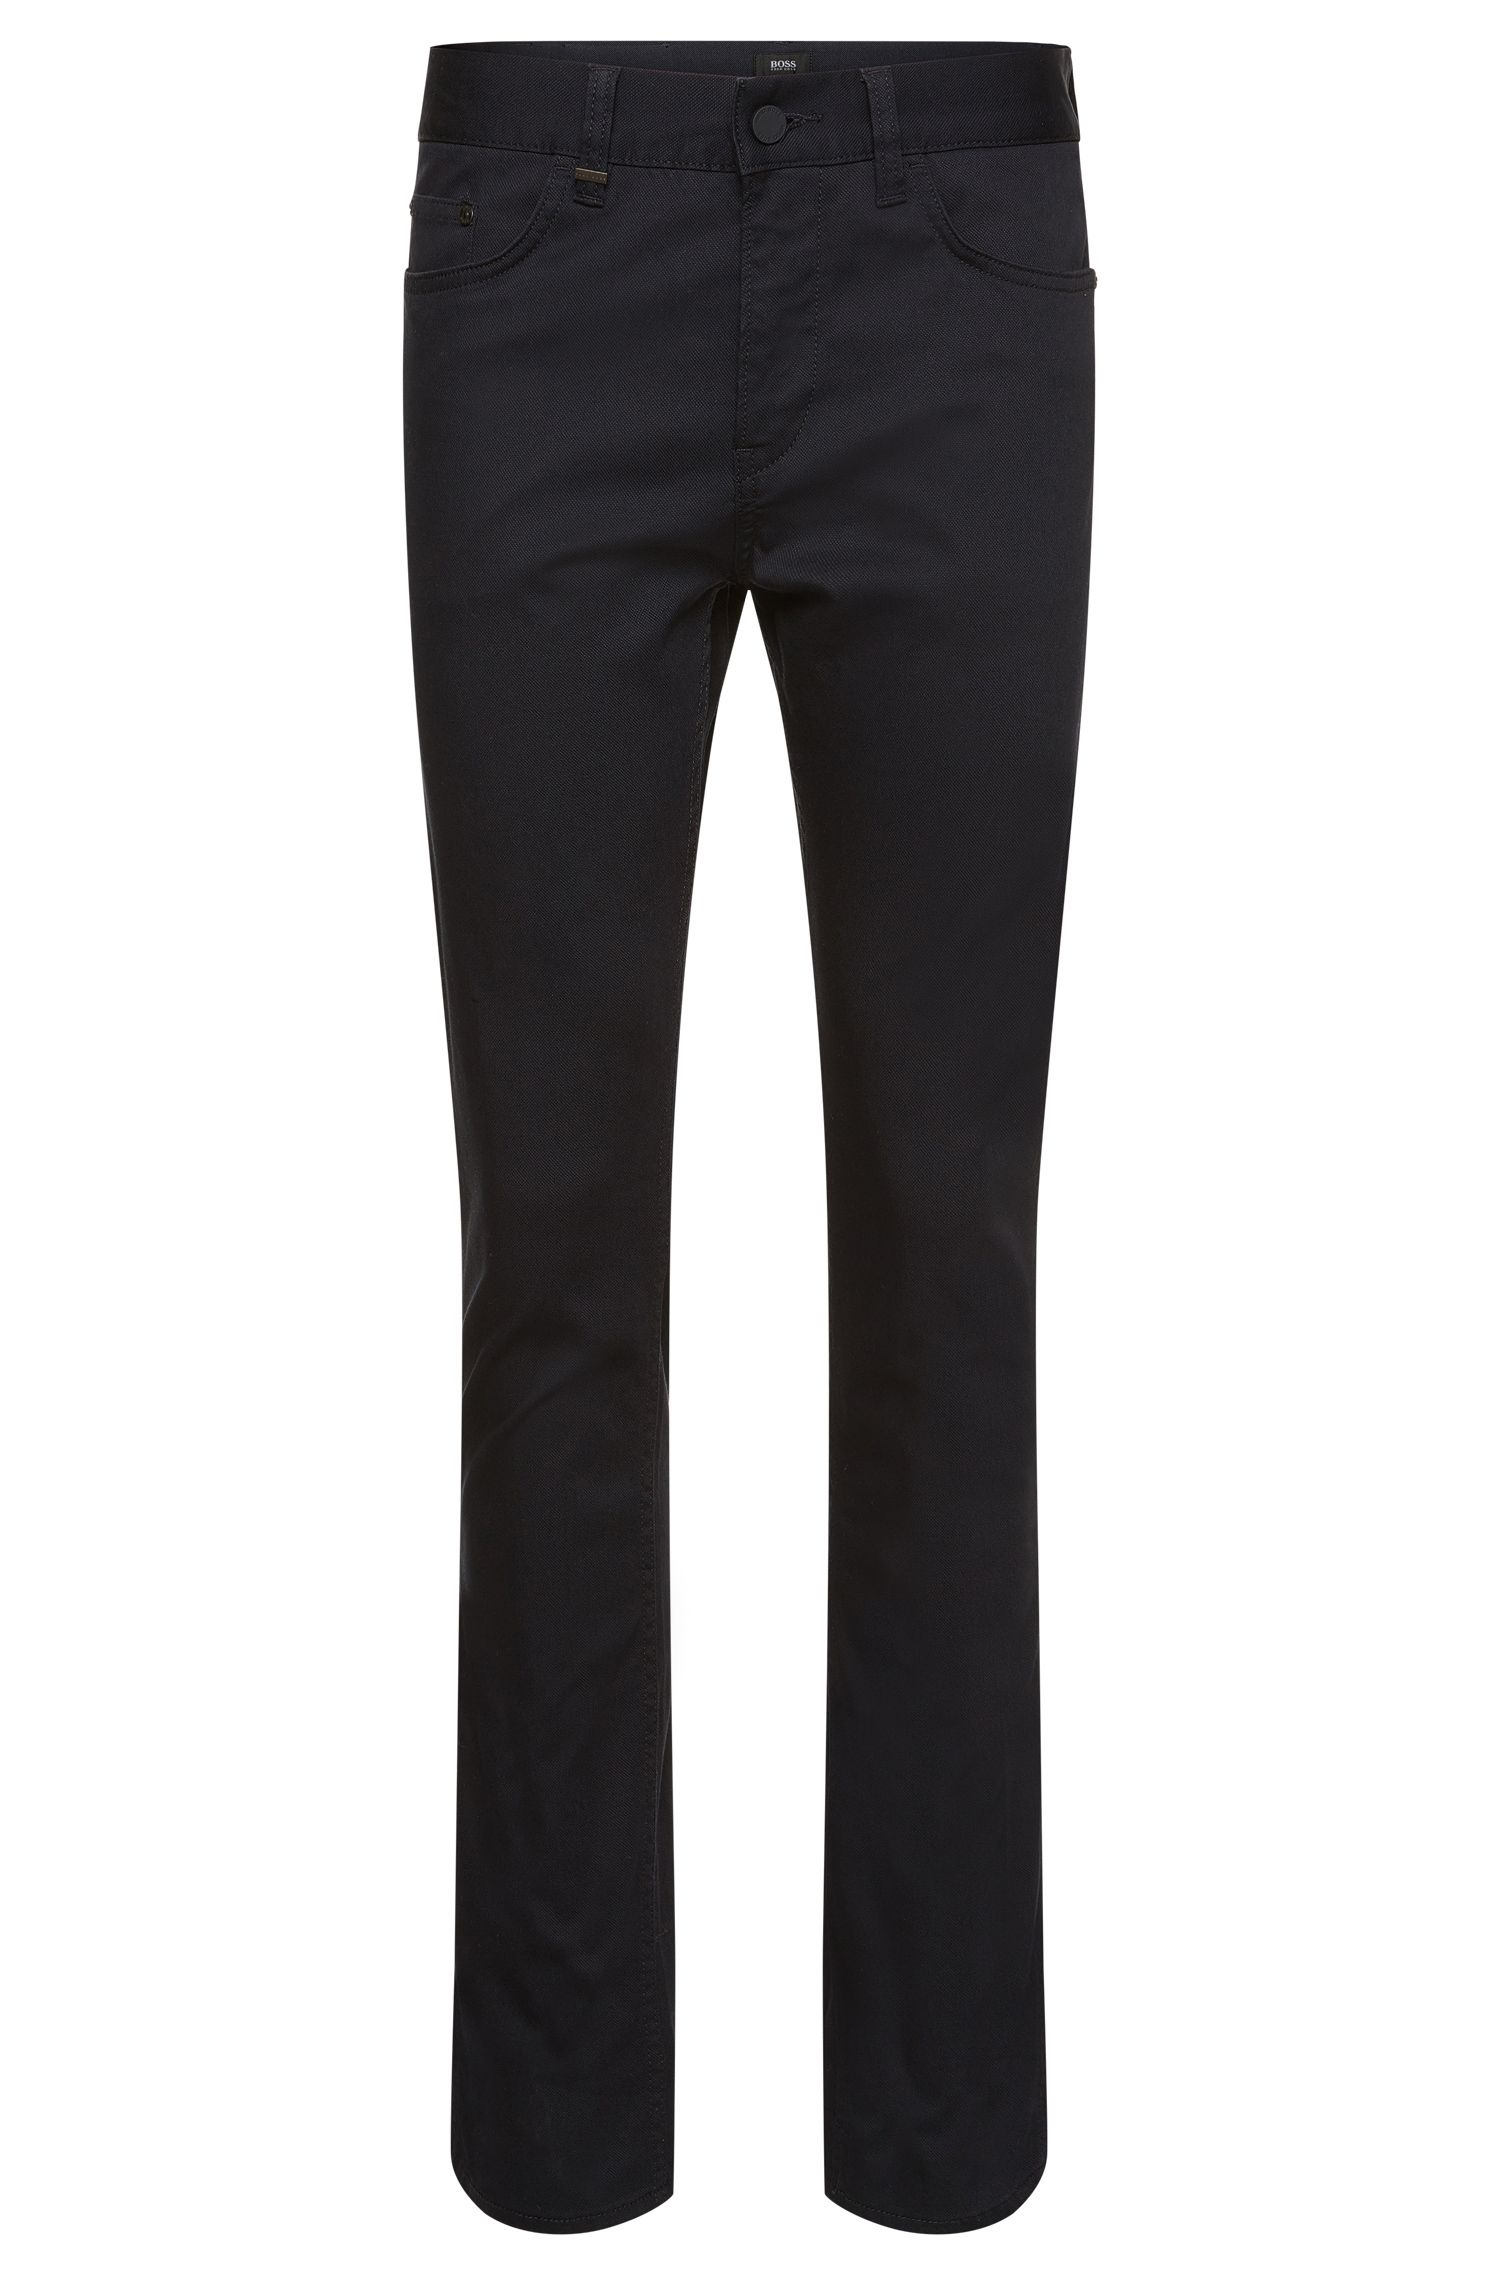 11 oz Stretch Cotton Trouser, Slim Fit | Delaware